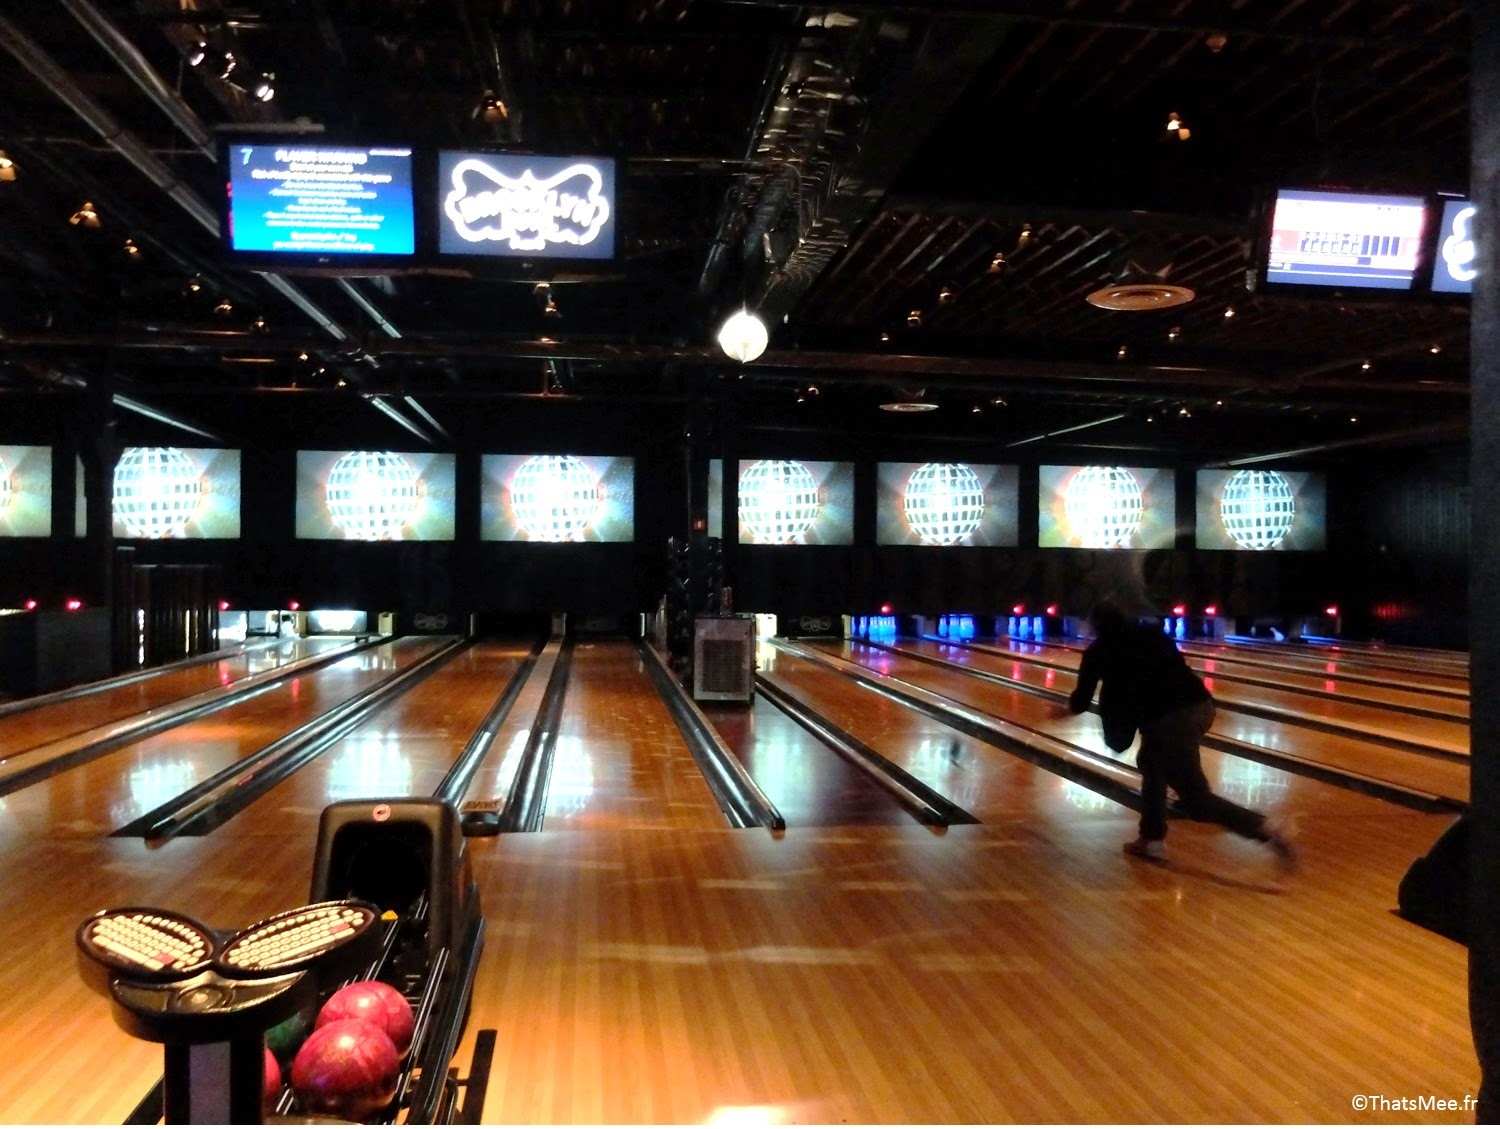 Brooklyn Bowl New-York Williamsburg bowling entertainment concerts resto, que faire à New-York activité loisirs